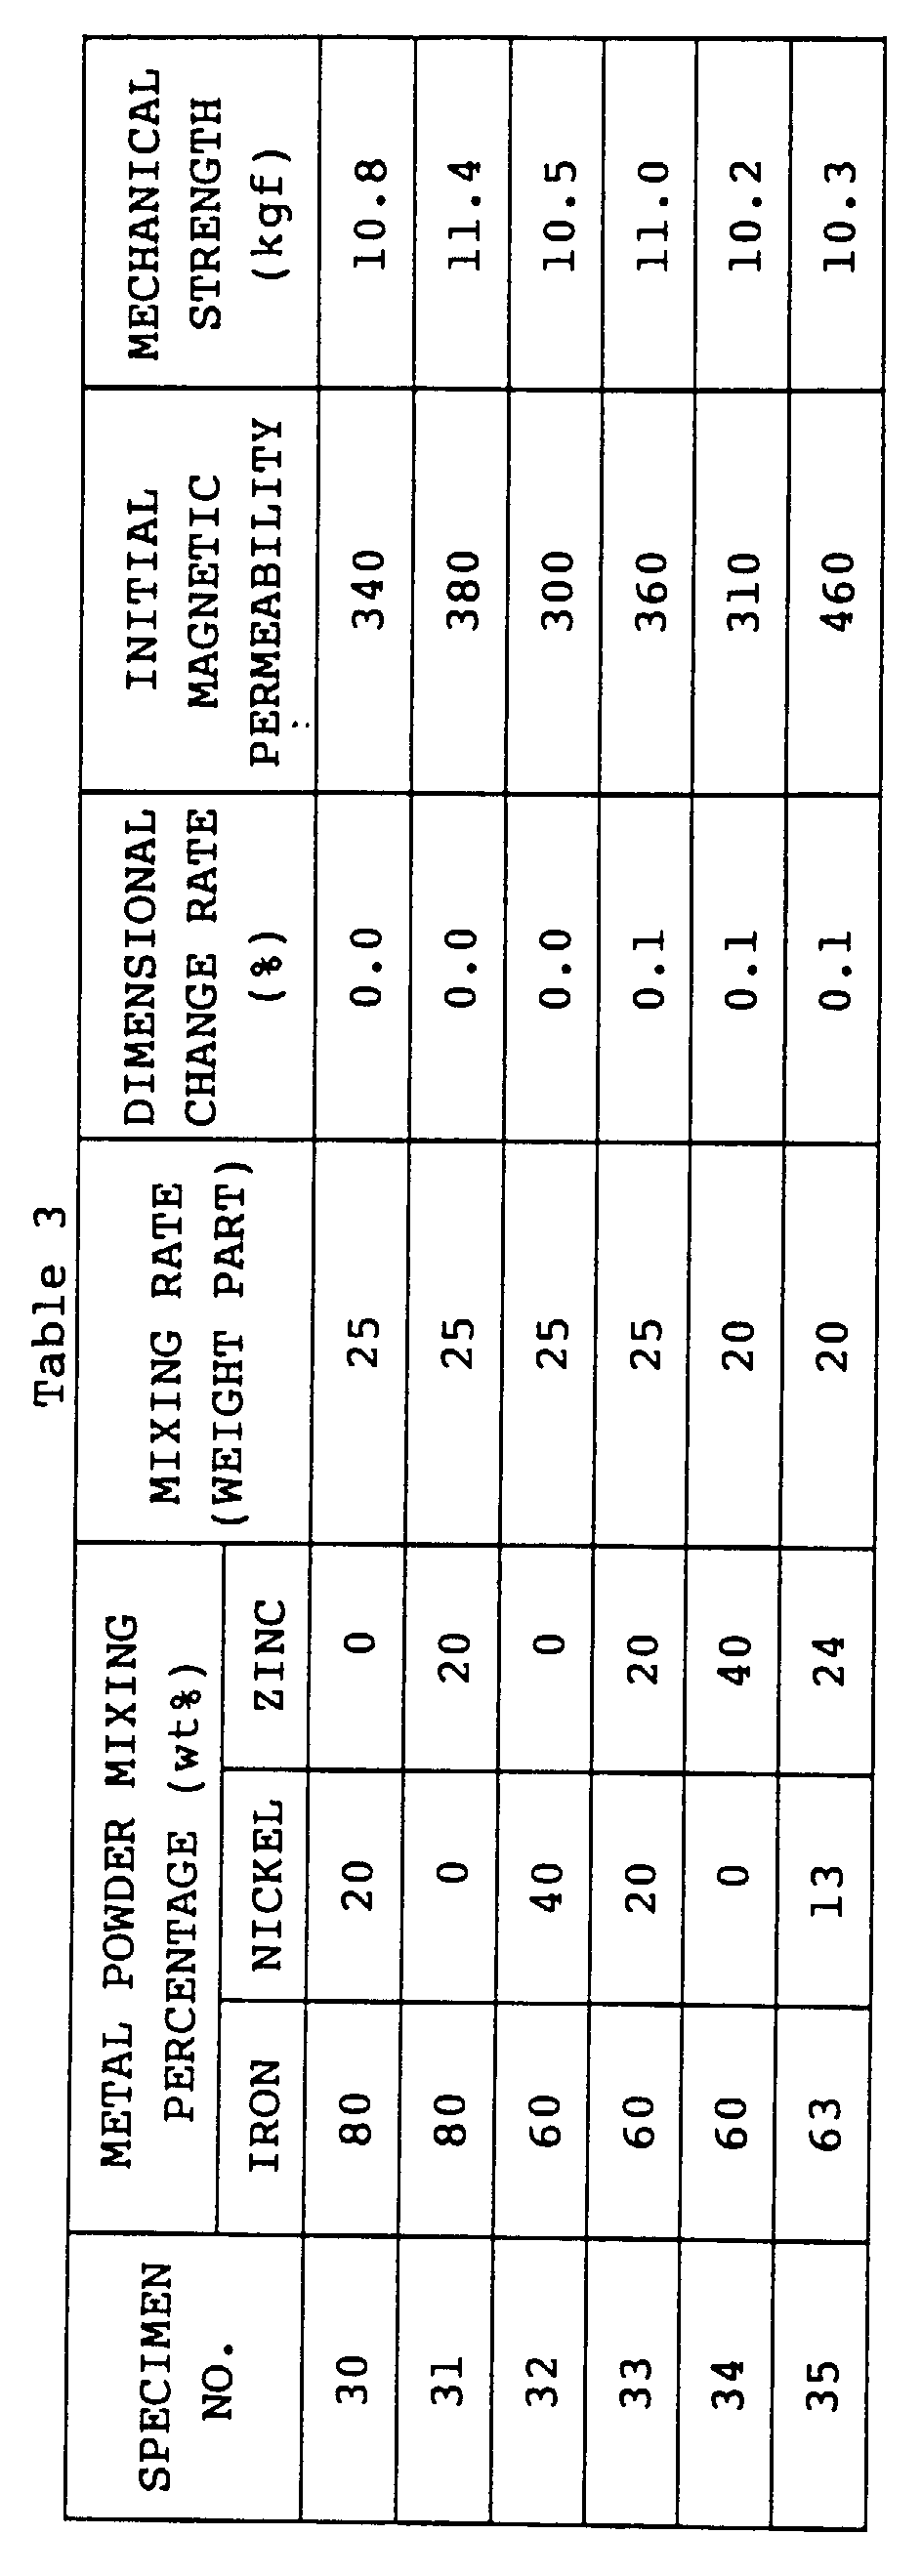 EP0623938B1 - Ferrite containing magnetic material and method of